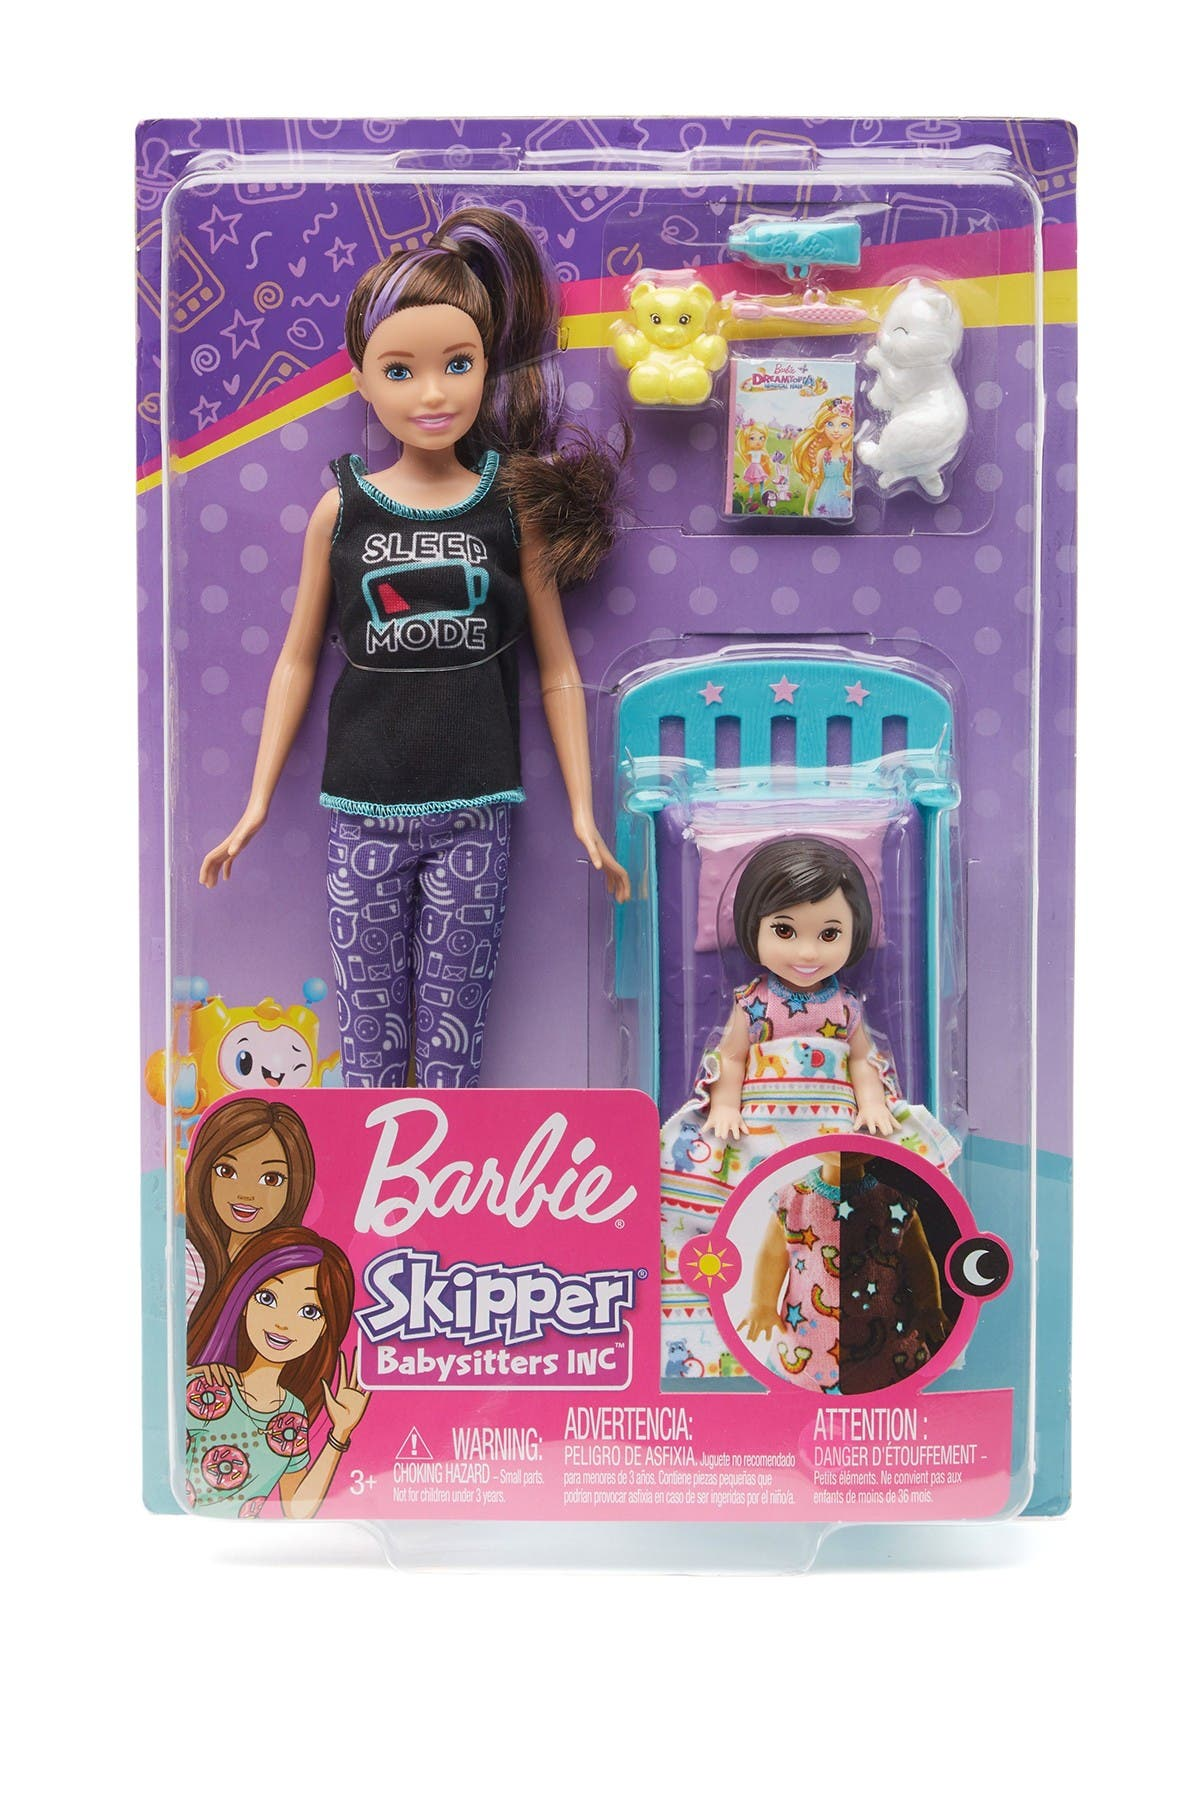 Image of Mattel Bedtime Playset with Skipper™ Doll, Toddler Doll and More